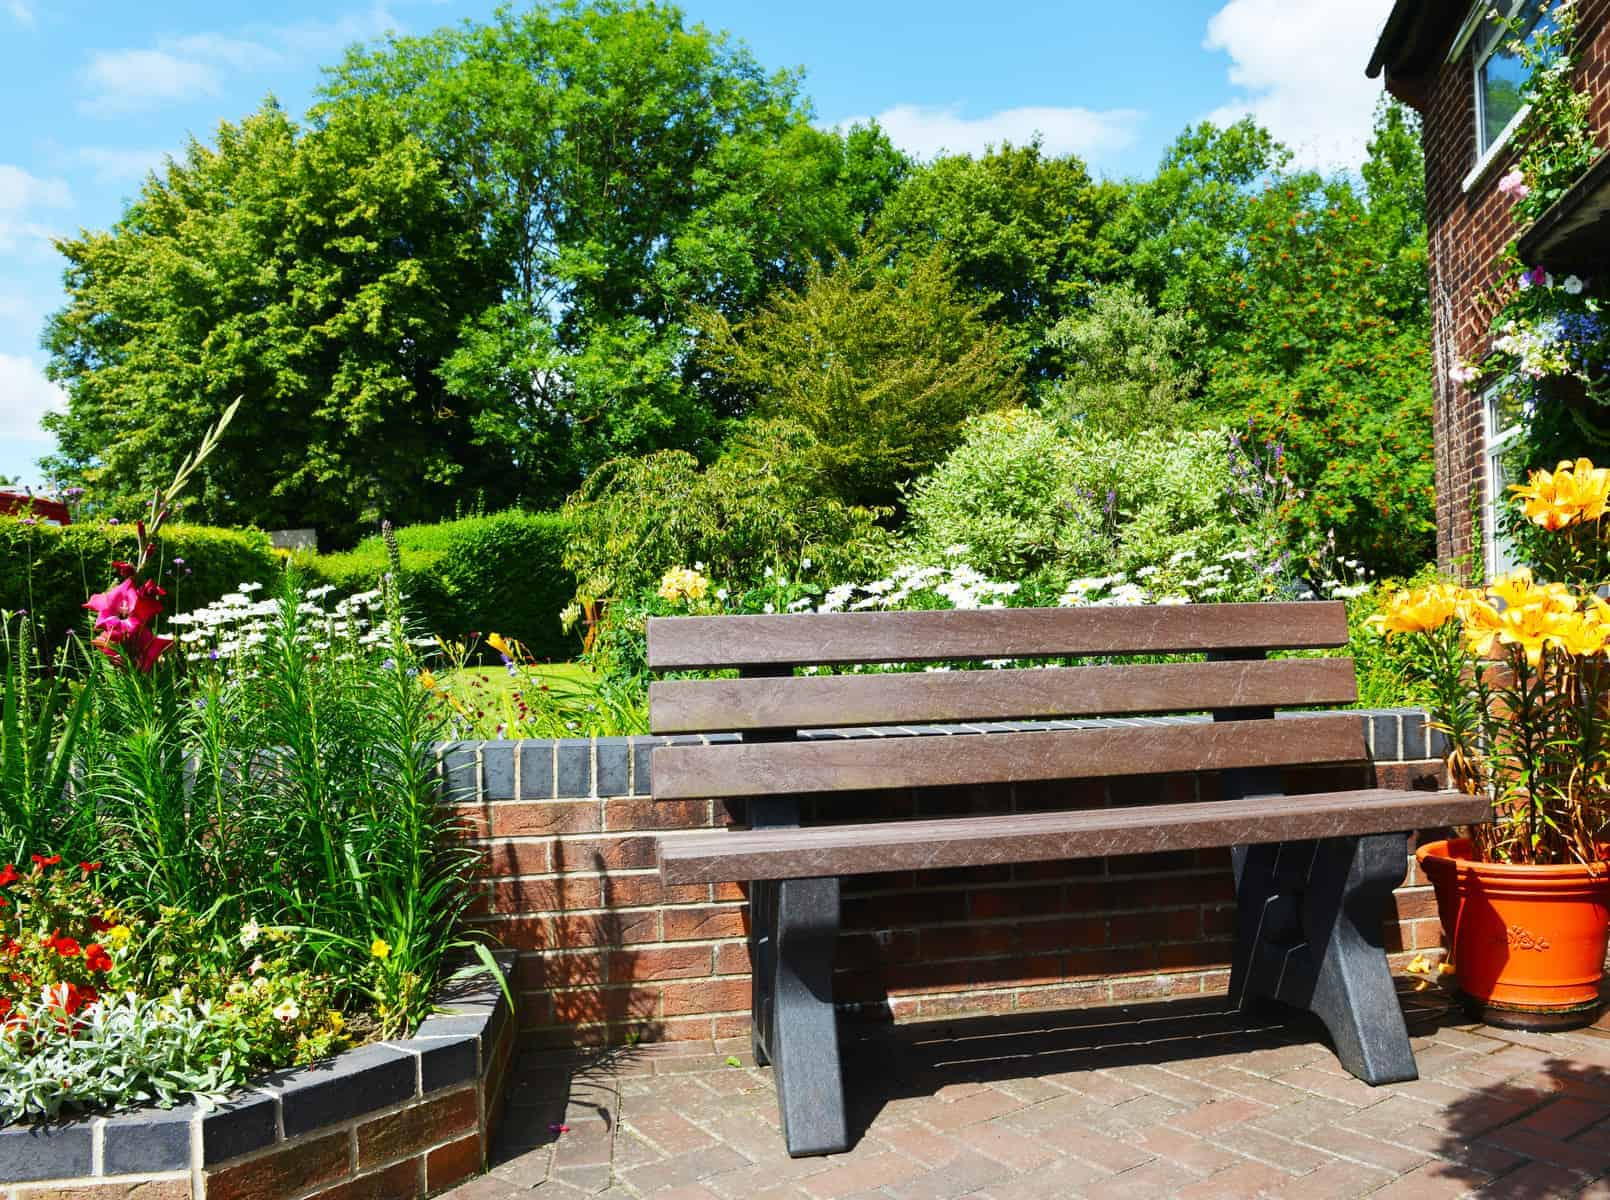 Peak Bench made from recycled plastic waste in garden